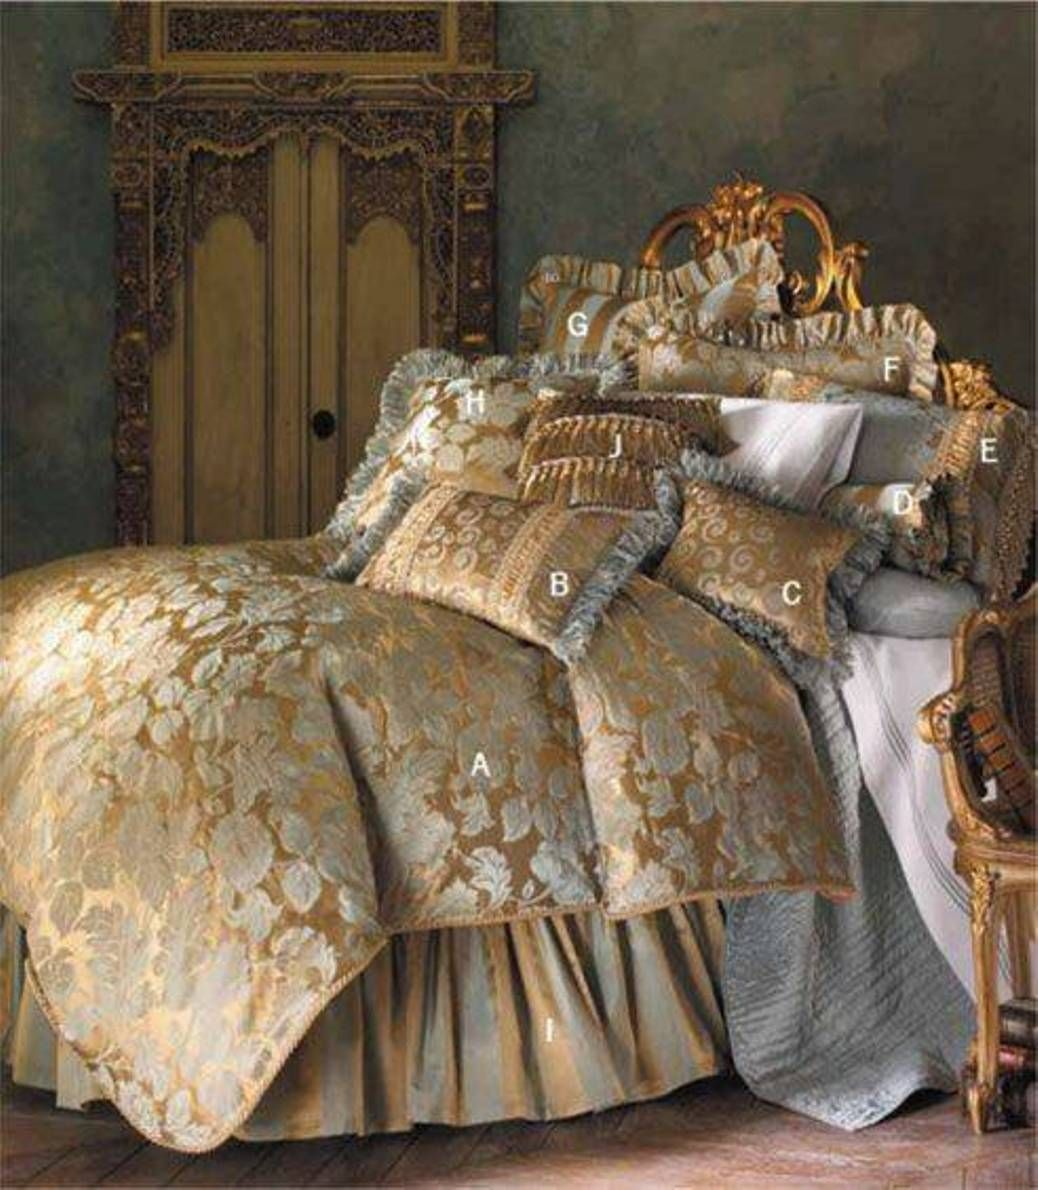 With An Opulent Style Fit For Royalty The Anastasia Bedding Collection By Isabella Brings Air Of Traditional Luxury To Your Bedroom